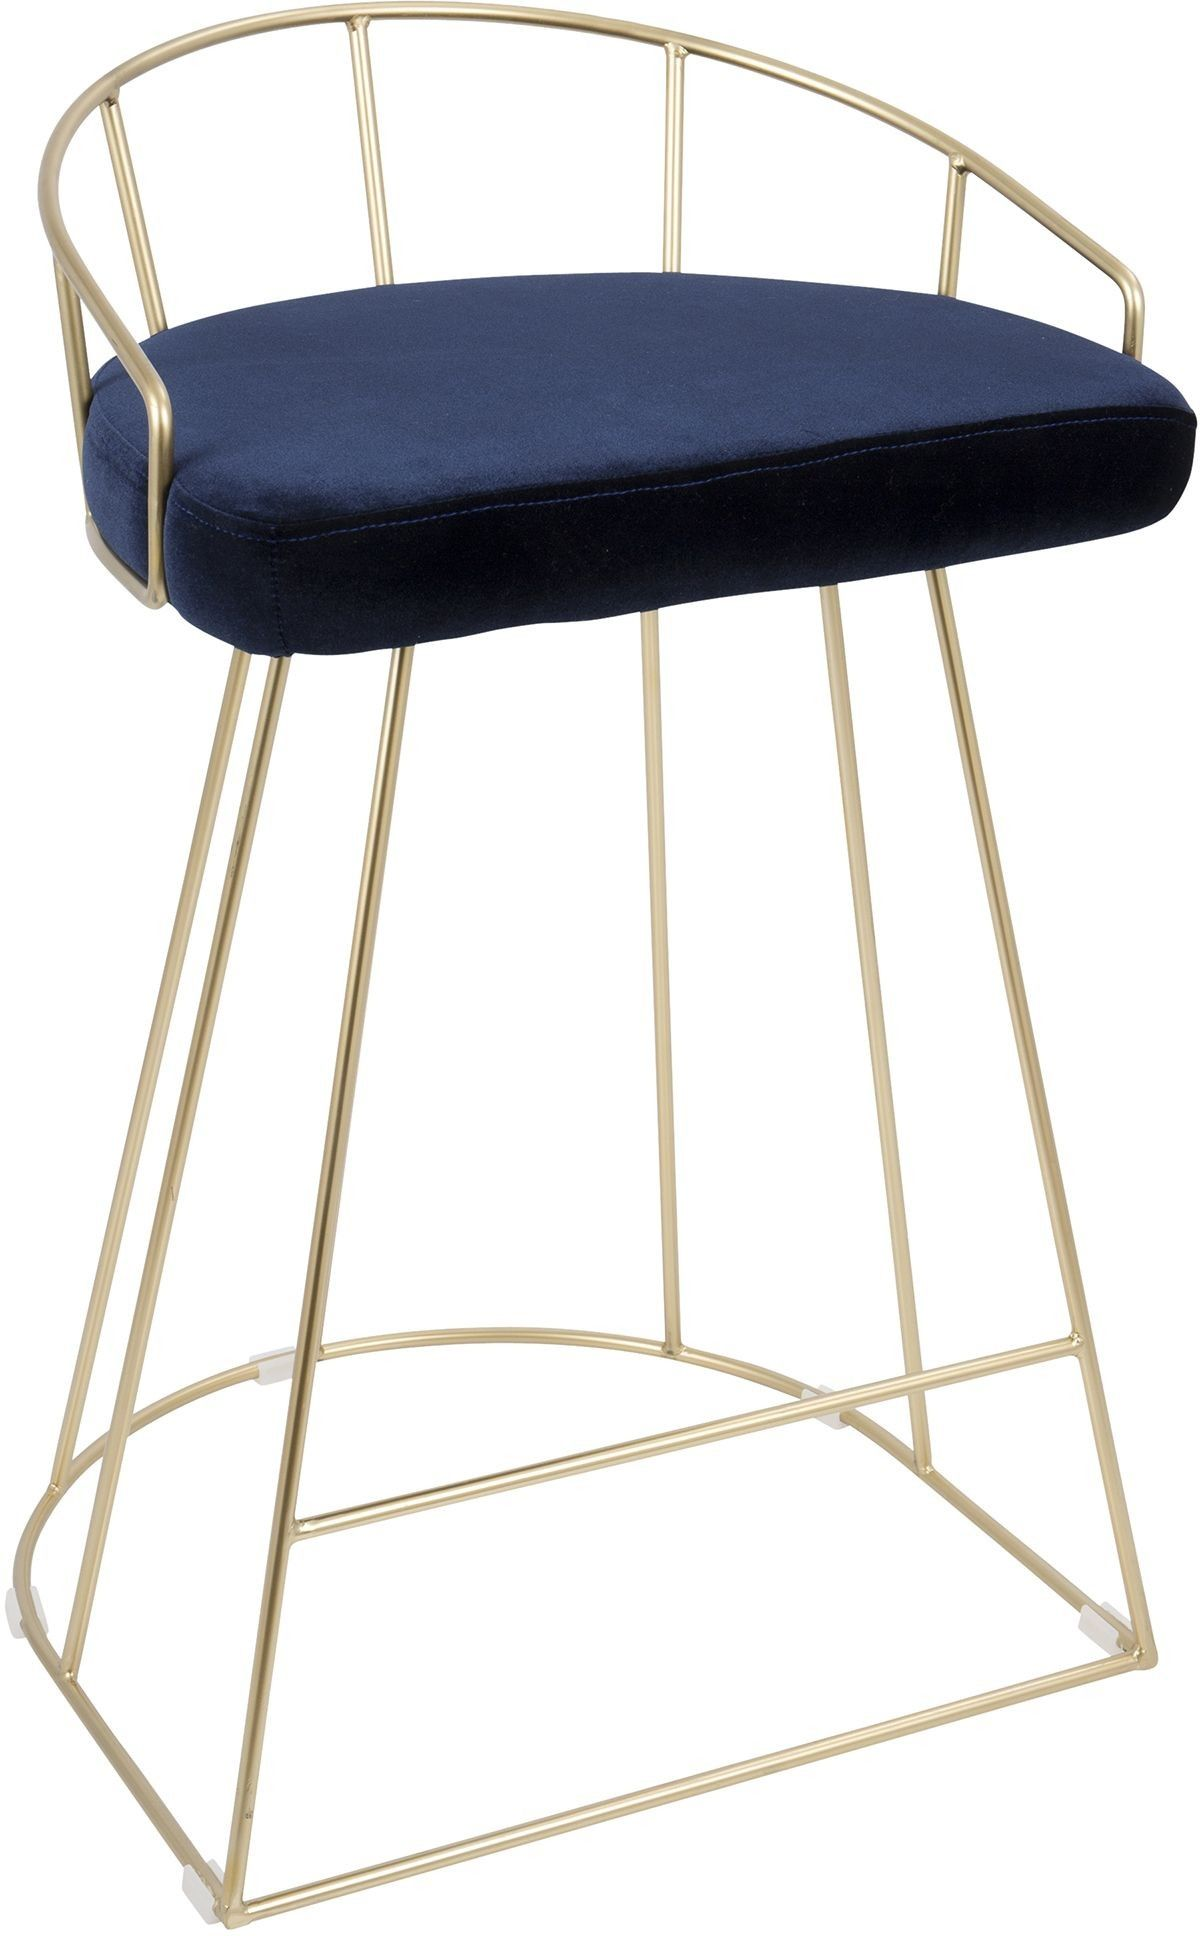 Pair Bed Stools: Canary Gold And Blue Counter Stool Set Of 2